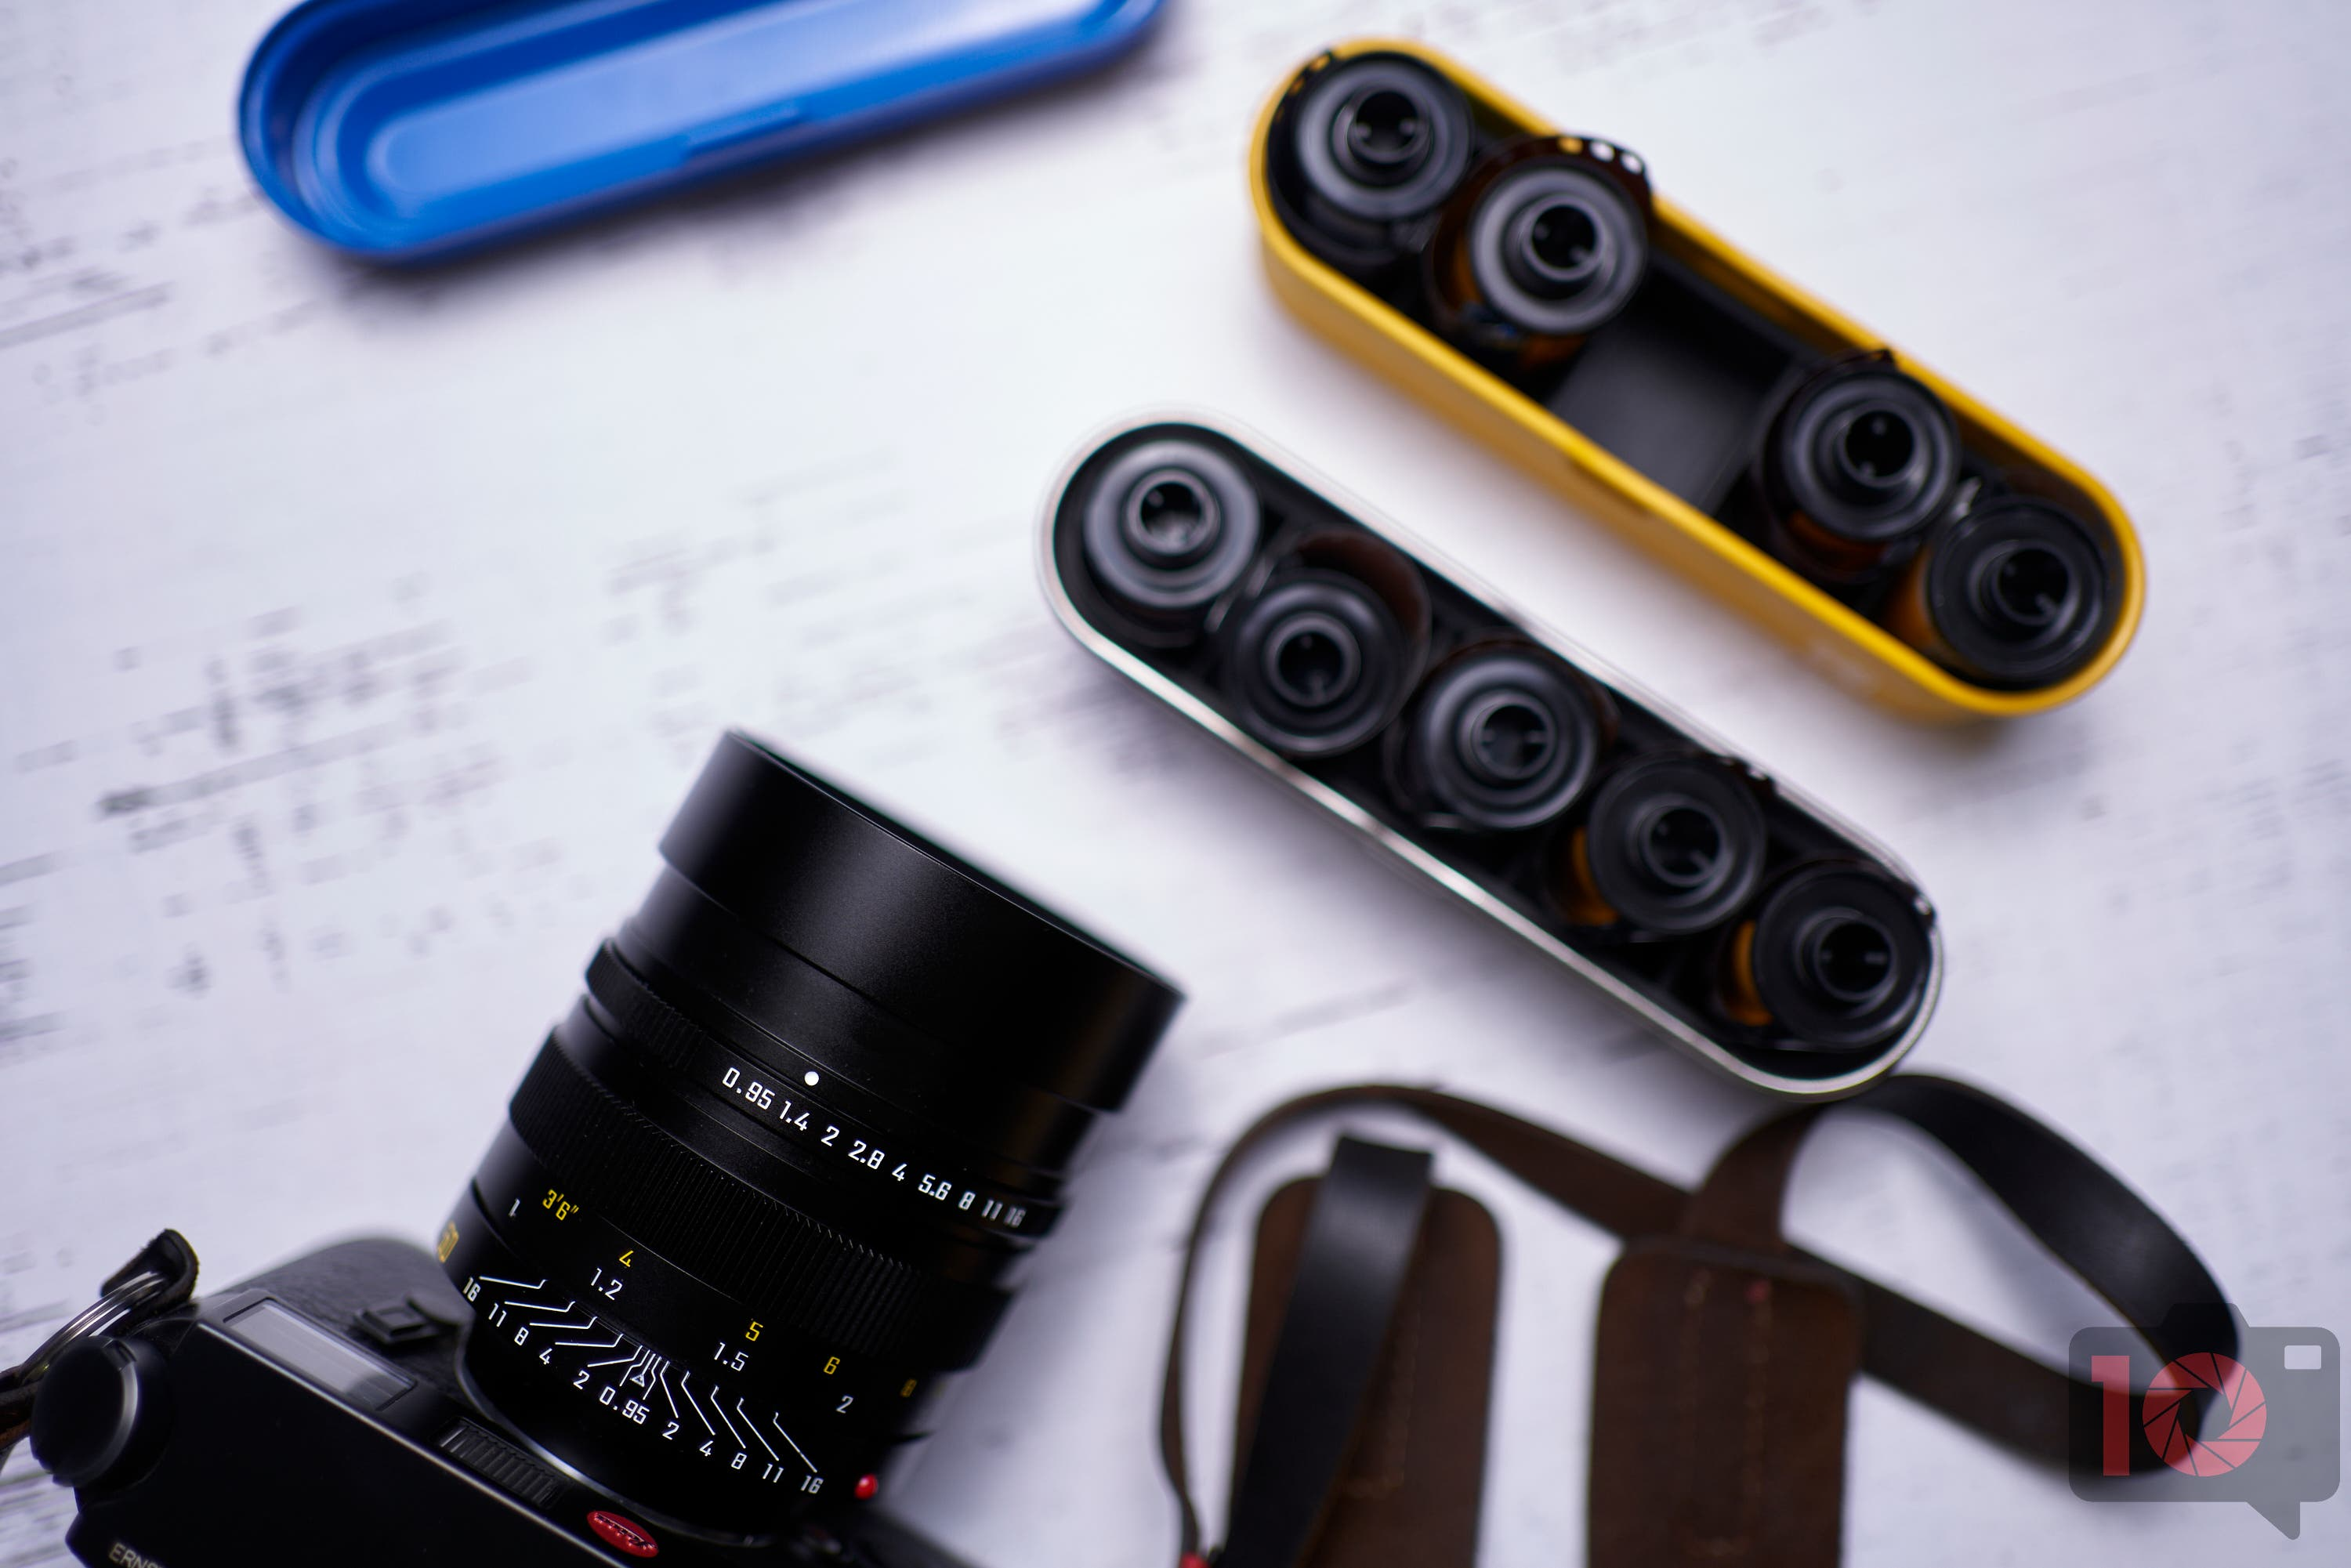 The Most Ethical Place to Get Free Photography for Your Needs